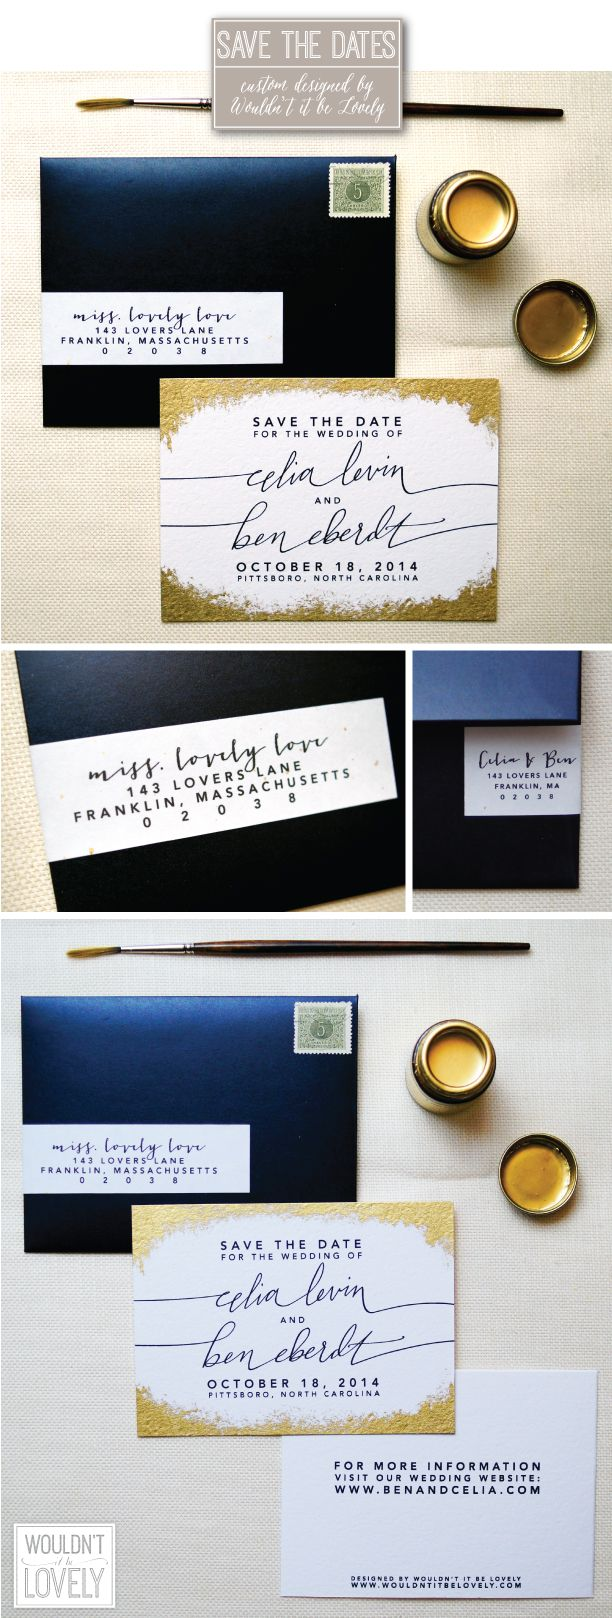 Gold Gilded Save the Dates Addressing Wedding